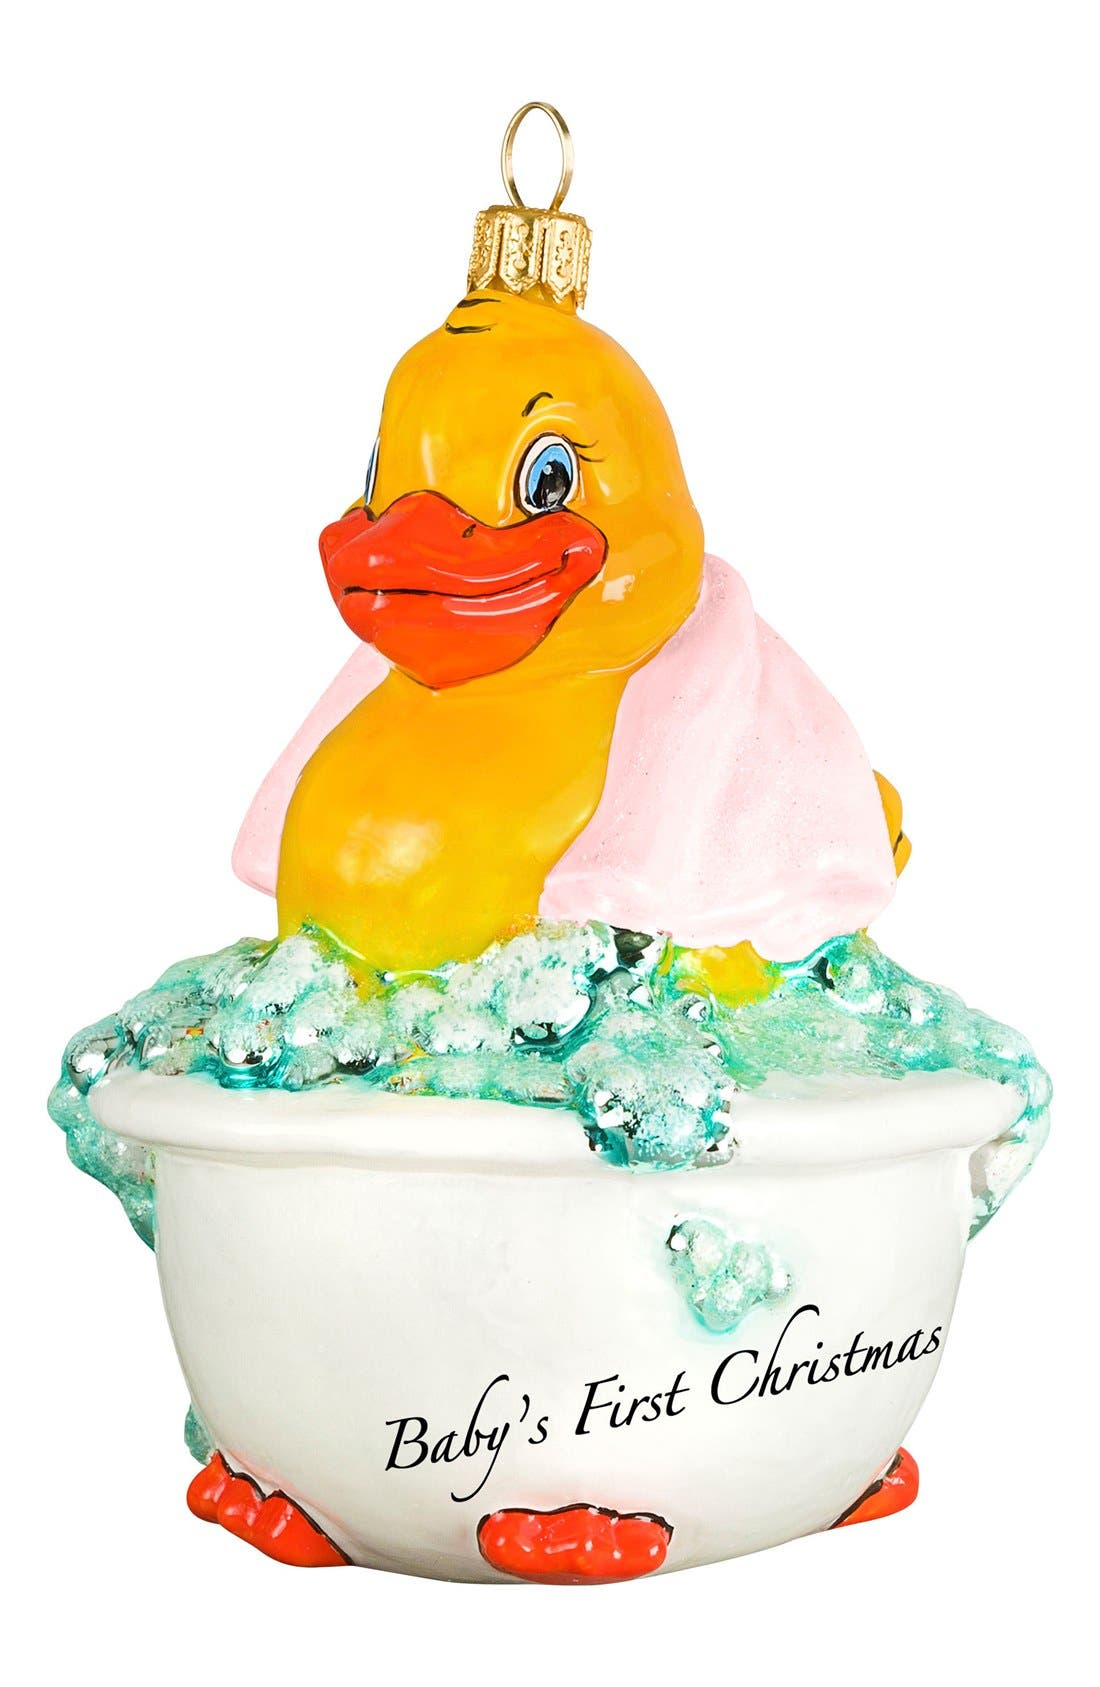 'Baby's First - Rubber Ducky' Ornament,                         Main,                         color, PINK